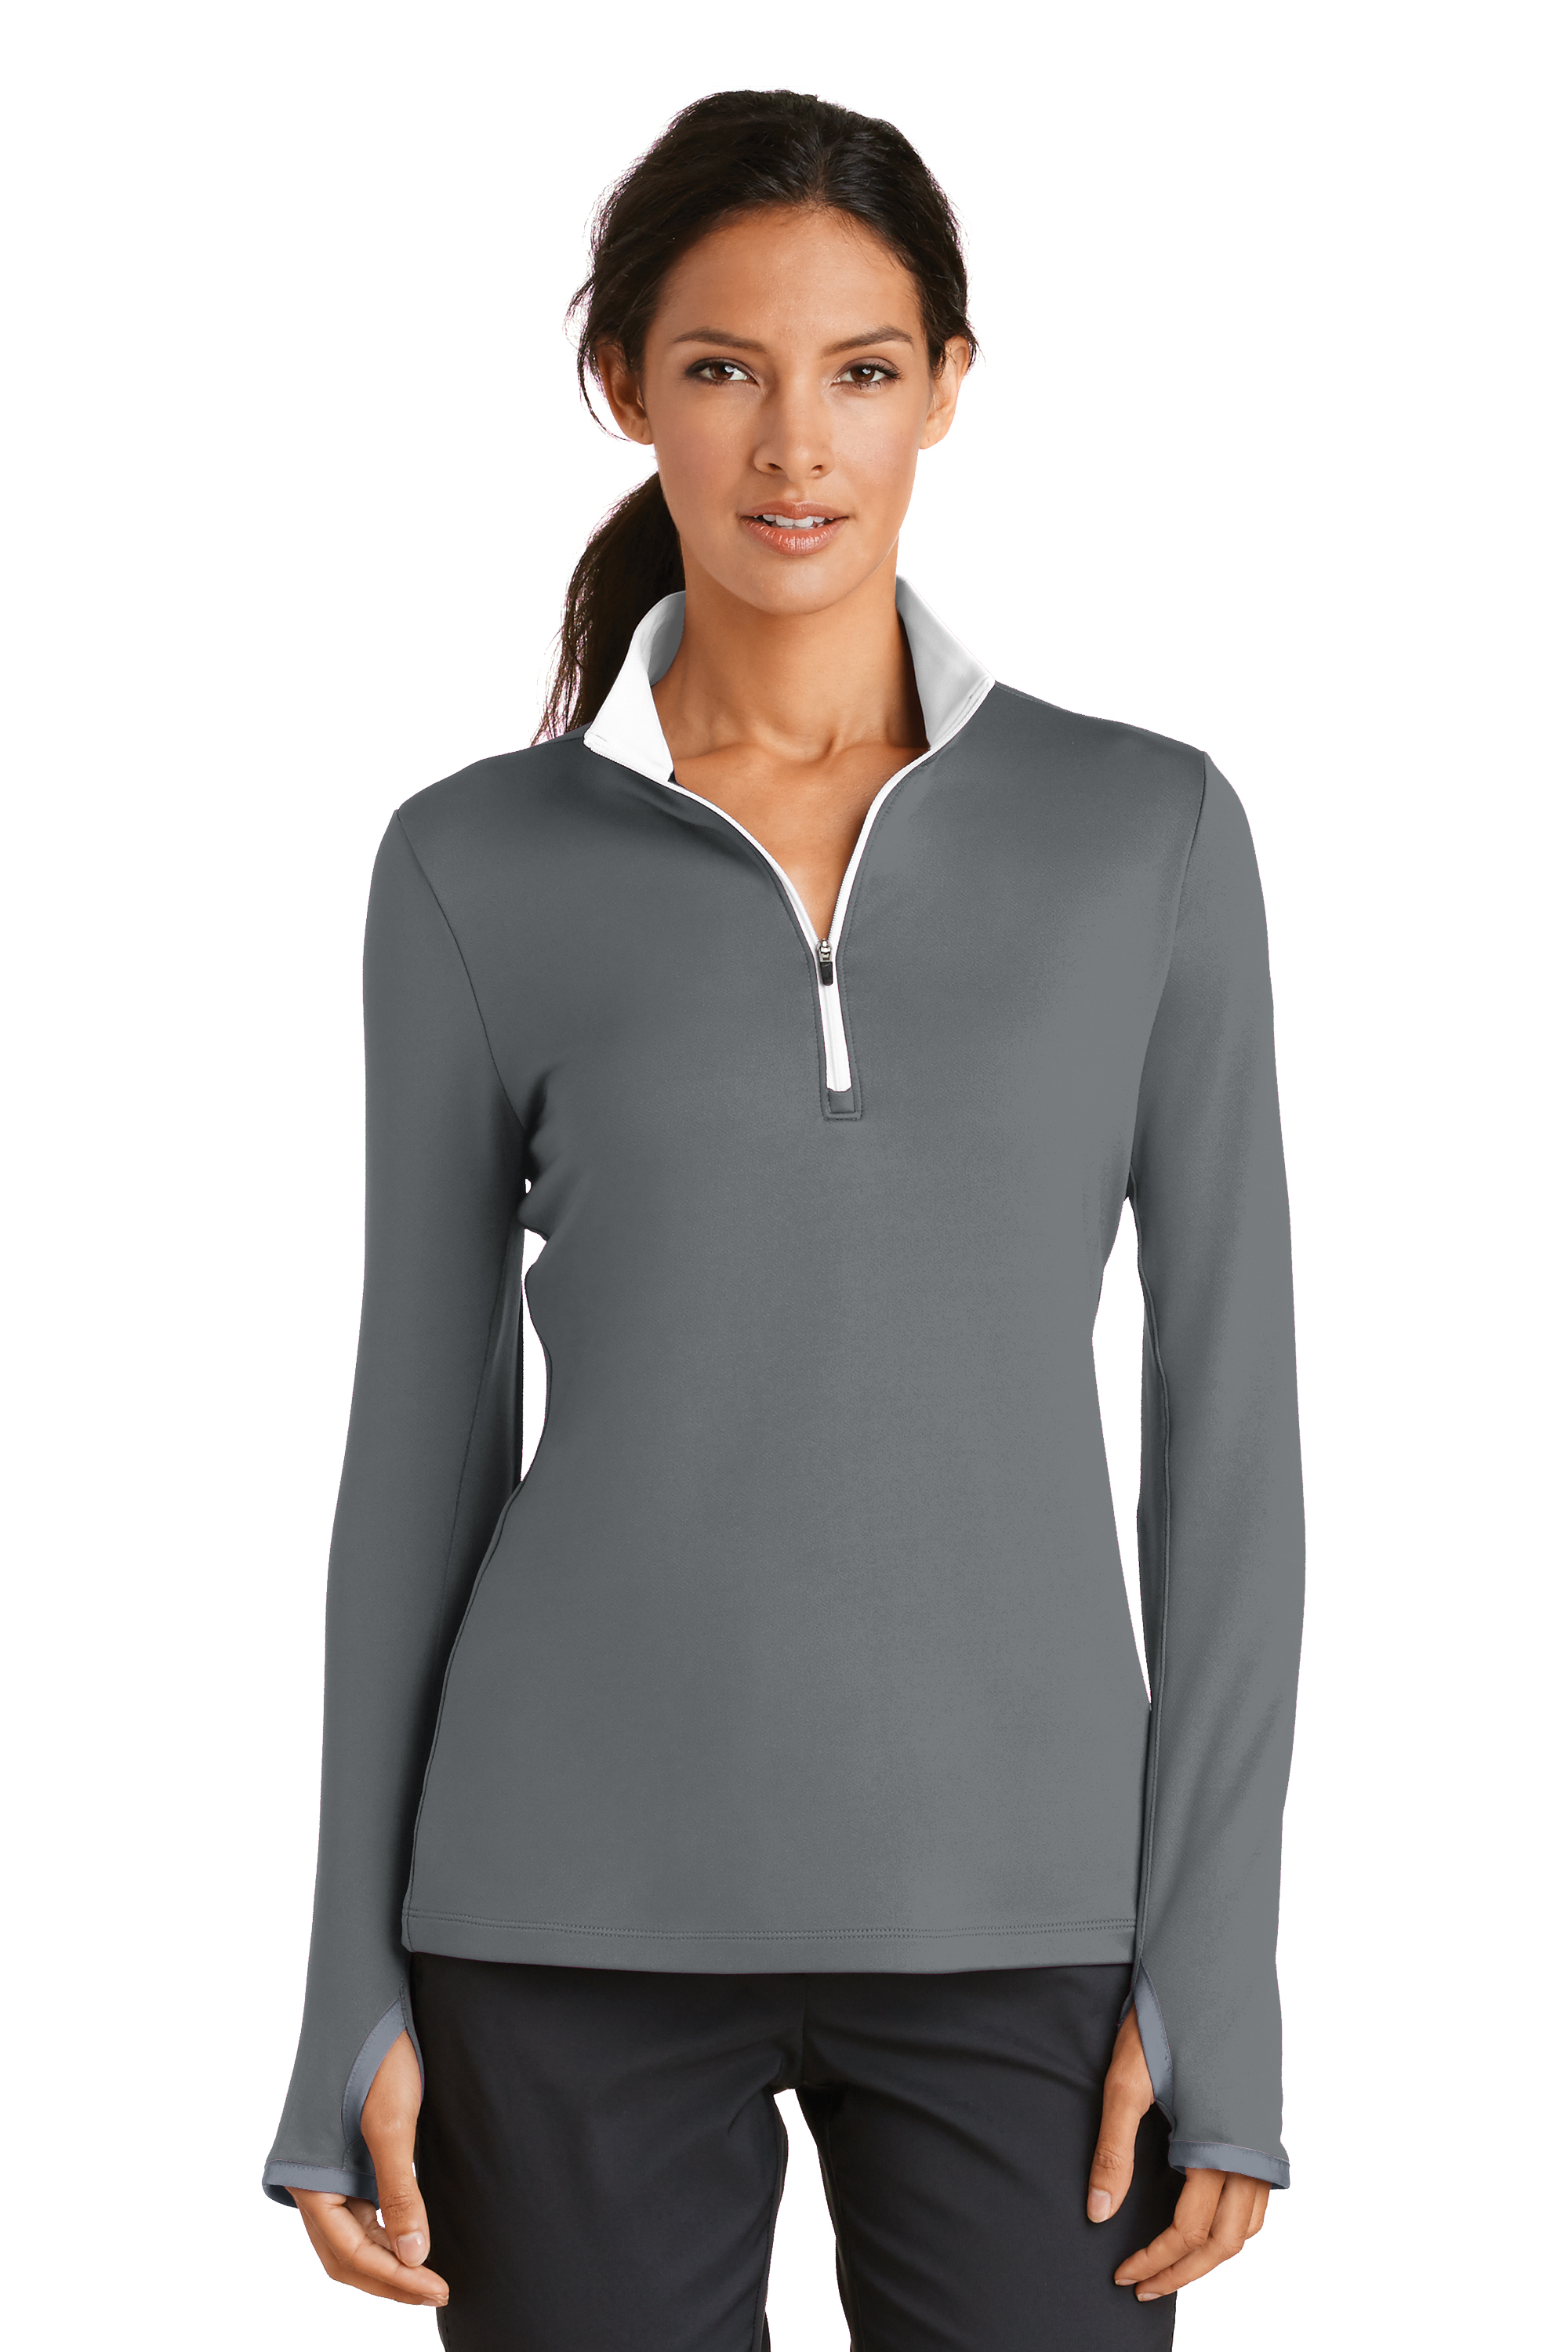 Nike golf women 39 s dri fit stretch half zip pullover 779796 for Women s dri fit golf shirts